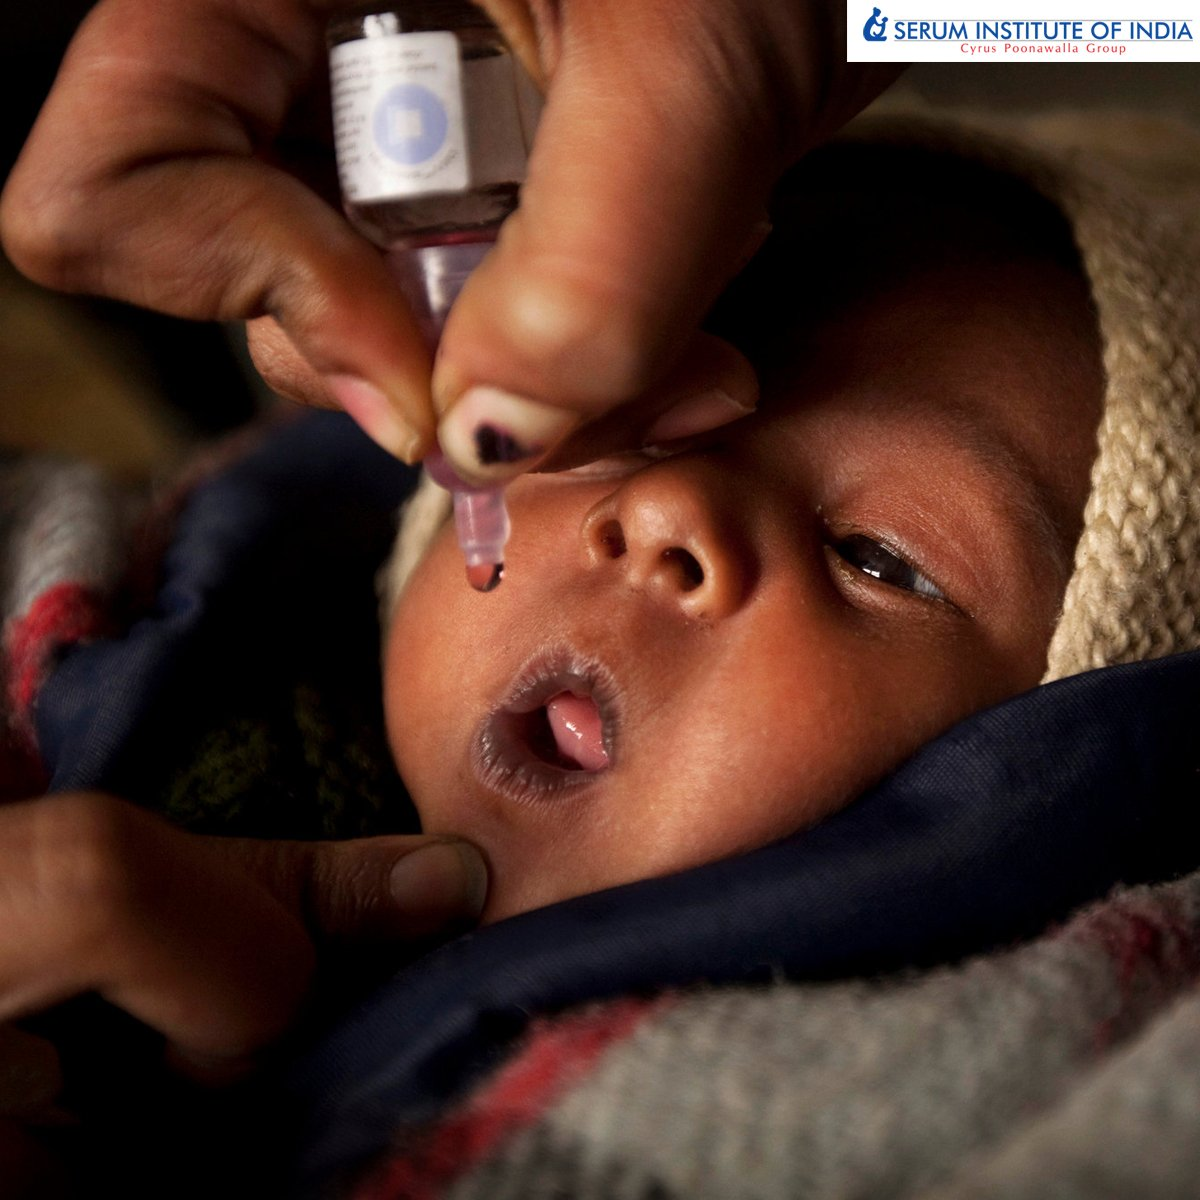 Around 65% of children in the world receive at least 1 vaccine made by us. #Healthcare #Vaccines